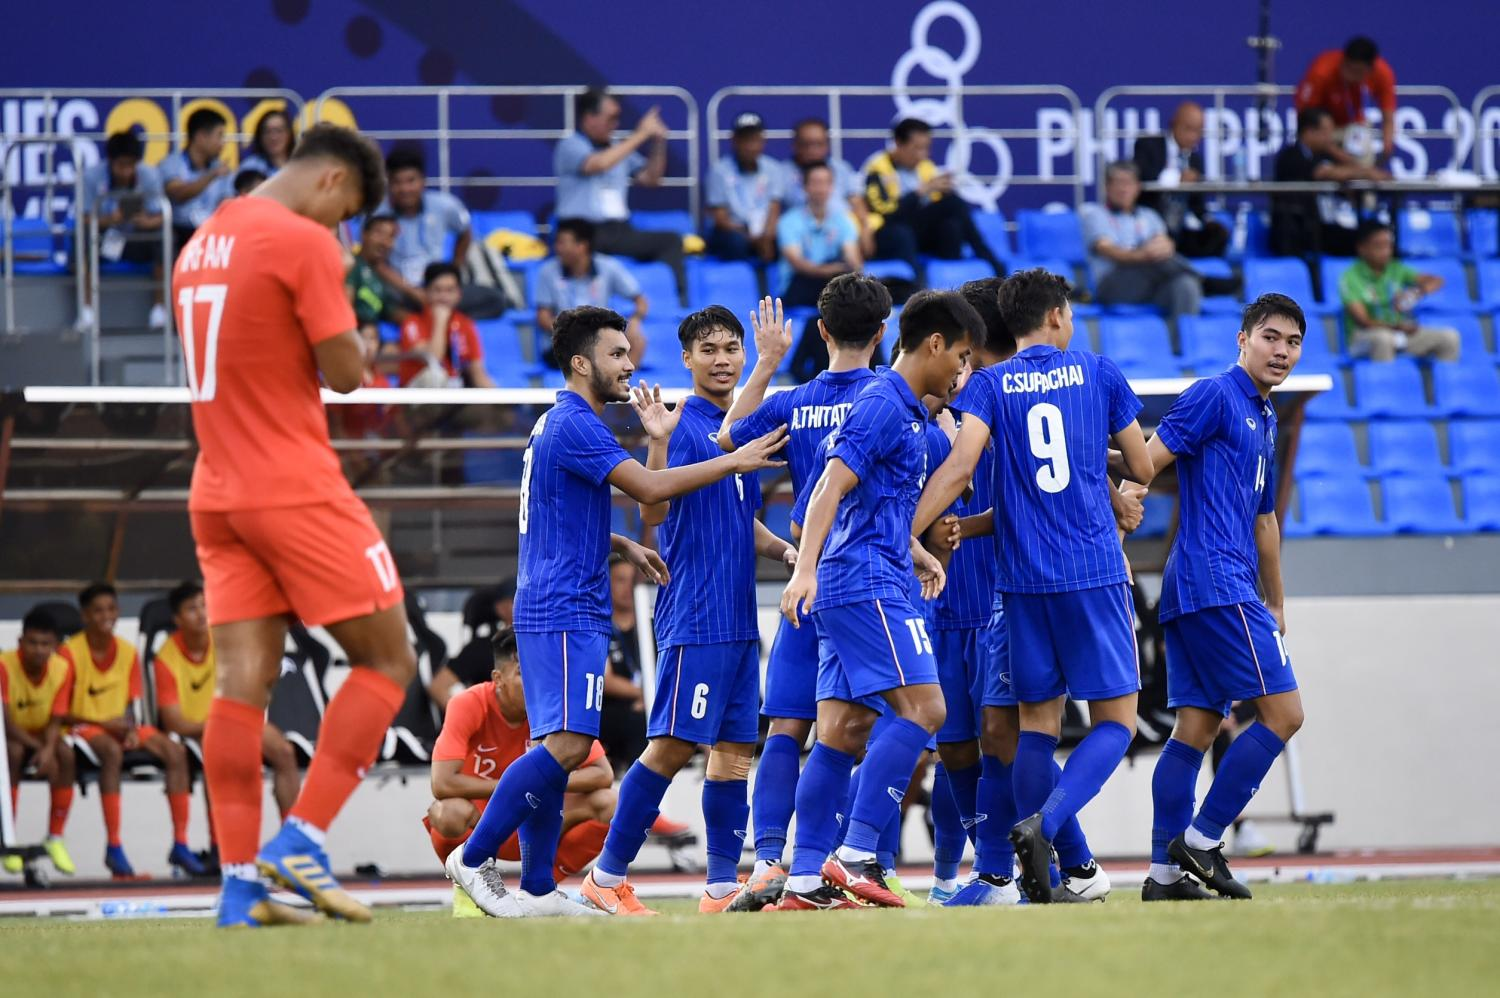 Thai players celebrate after scoring a goal against Singapore on Sunday.